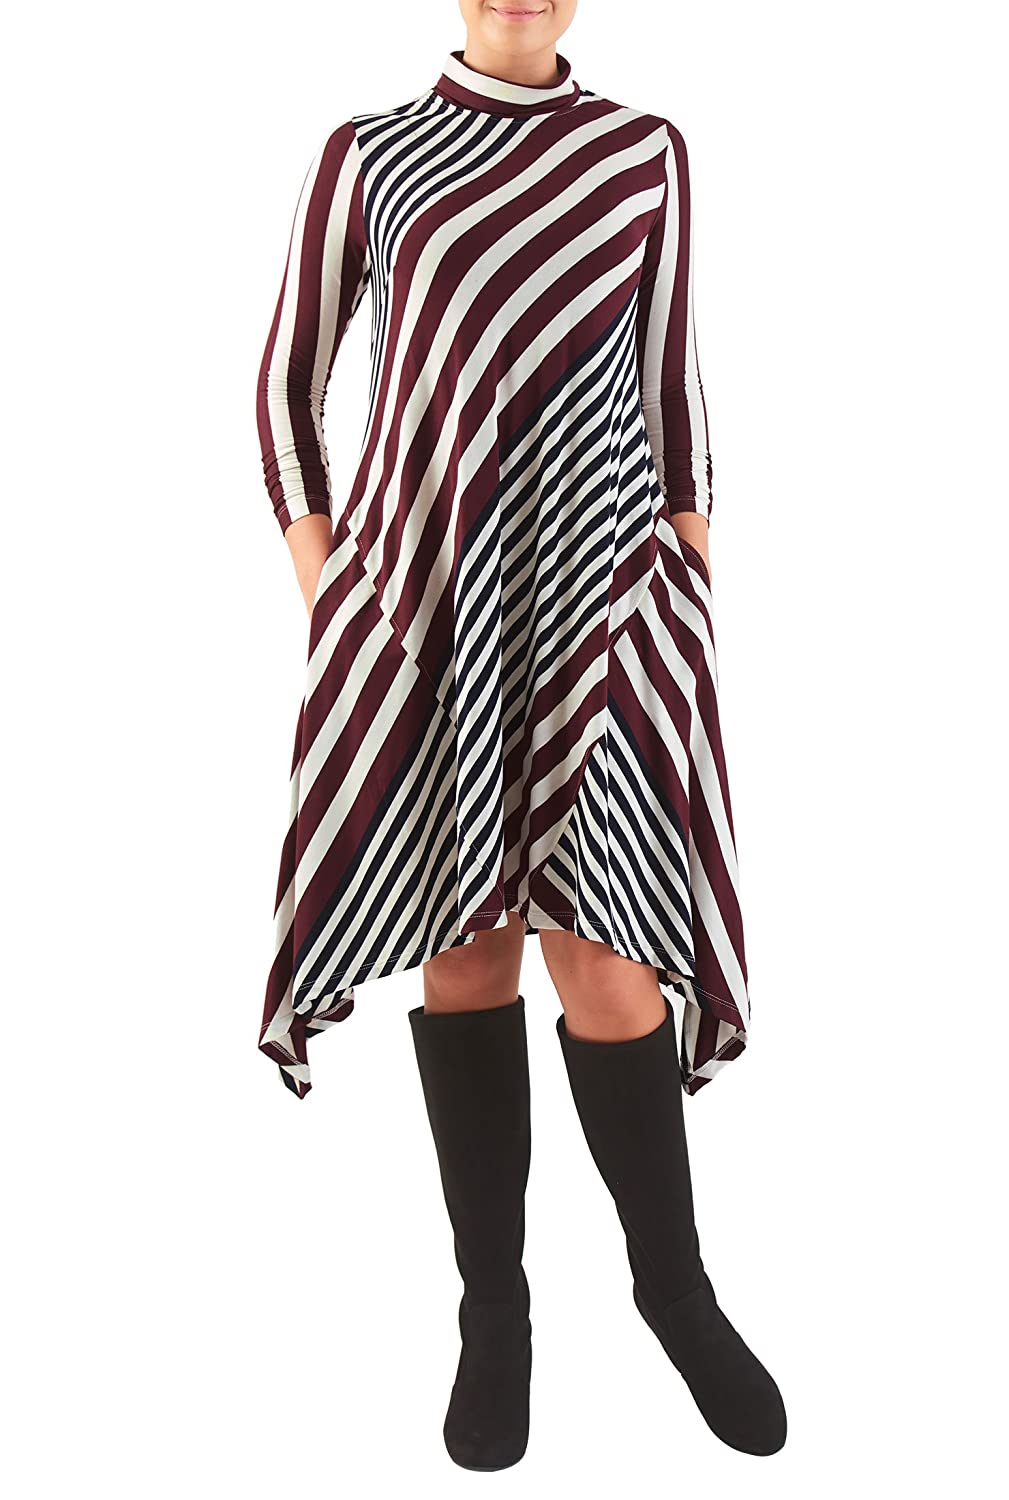 eShakti Women's Asymmetric hem stripe jersey knit trapeze dress